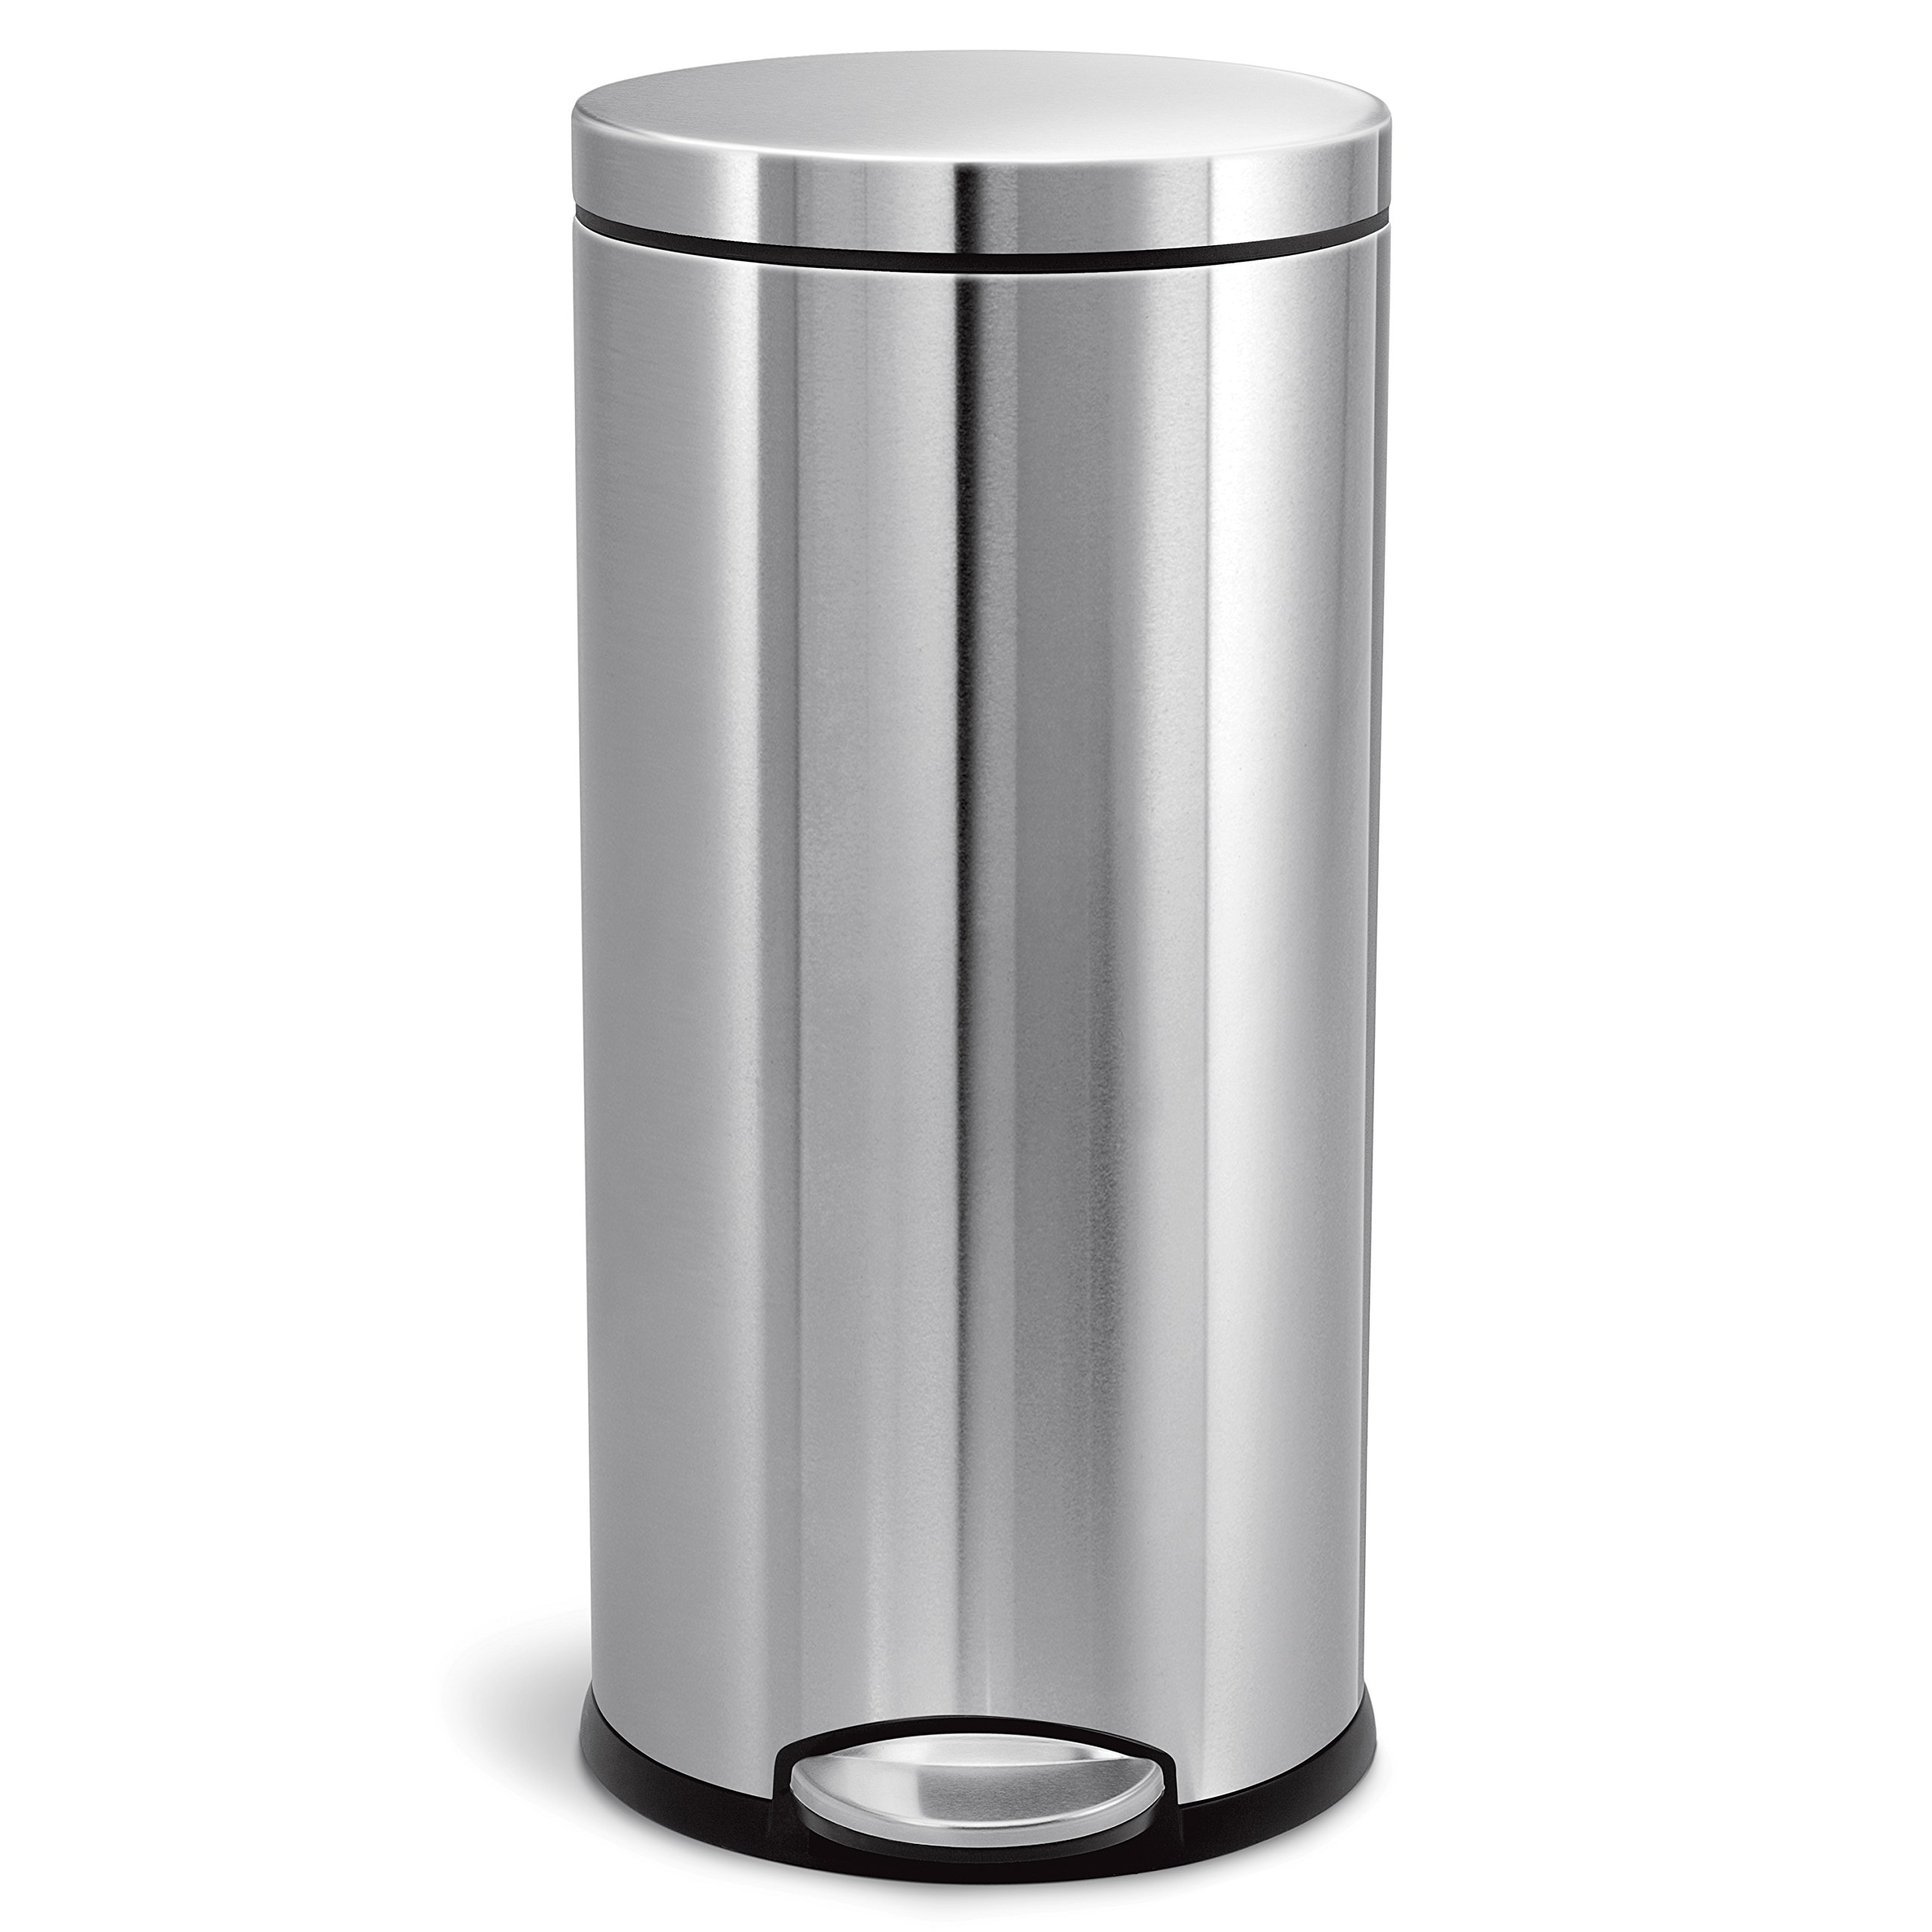 simplehuman 30 Liter/8 Gallon Stainless Steel Round Kitchen Step Trash Can, Brushed Stainless Steel by simplehuman